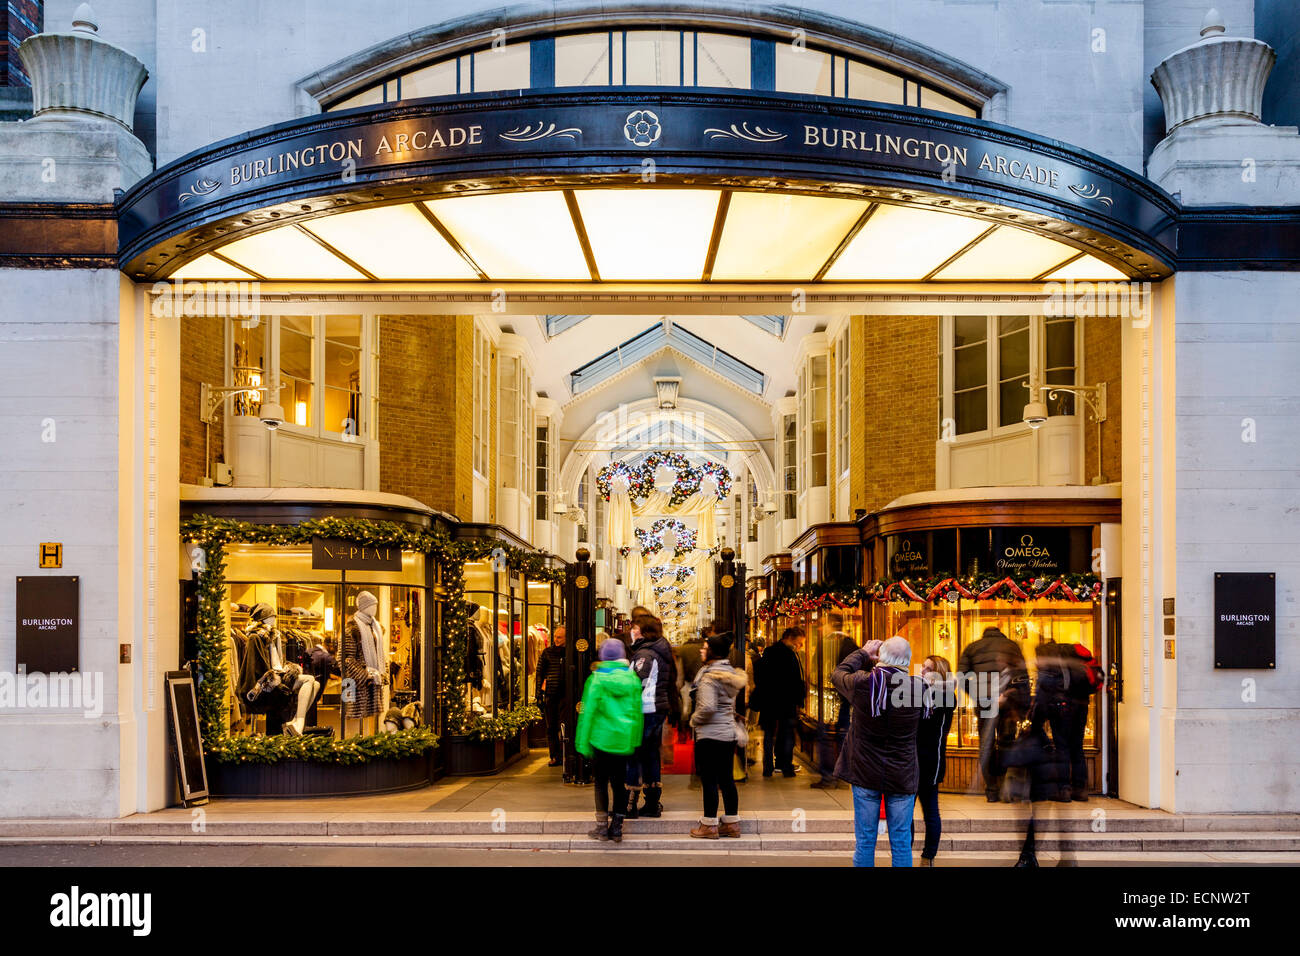 The Entrance To Burlington Arcade Off New Bond Street, London, England - Stock Image